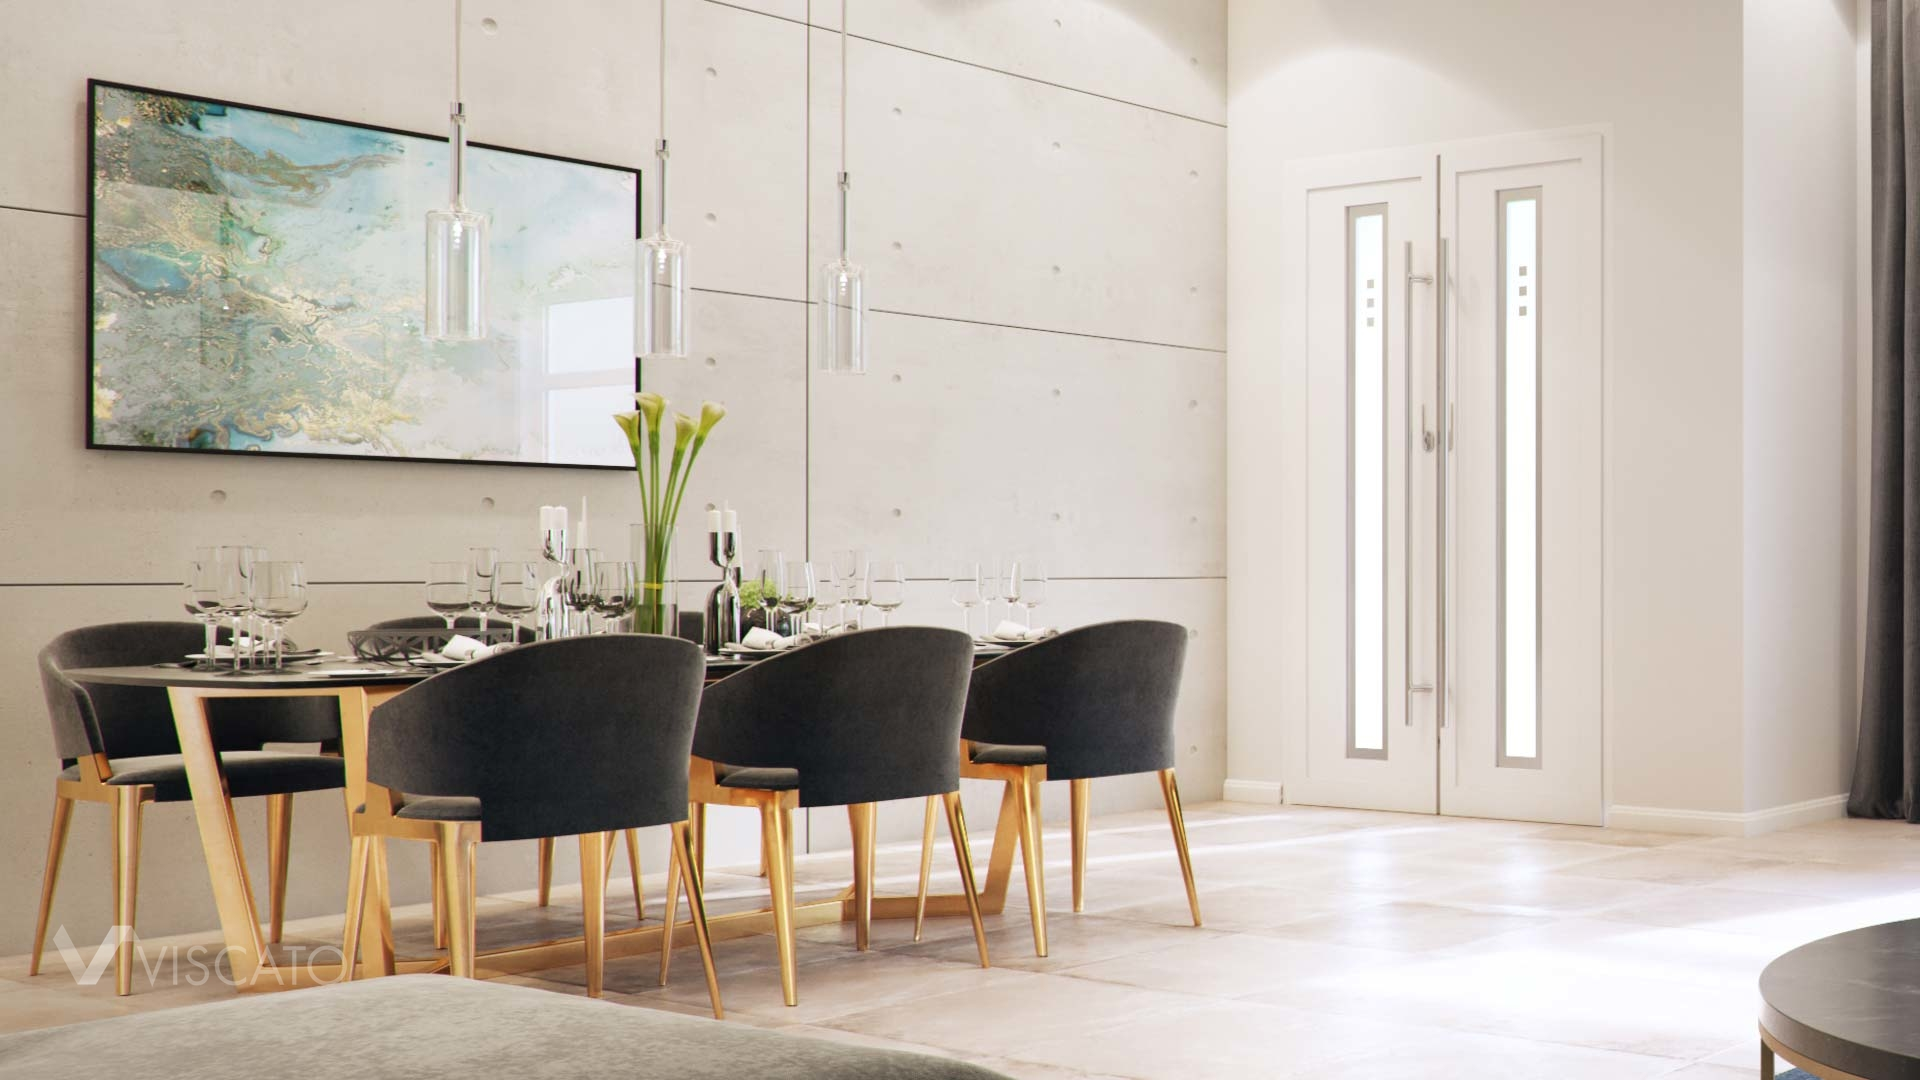 3D interiors, dining room with a concerte wall- Viscato